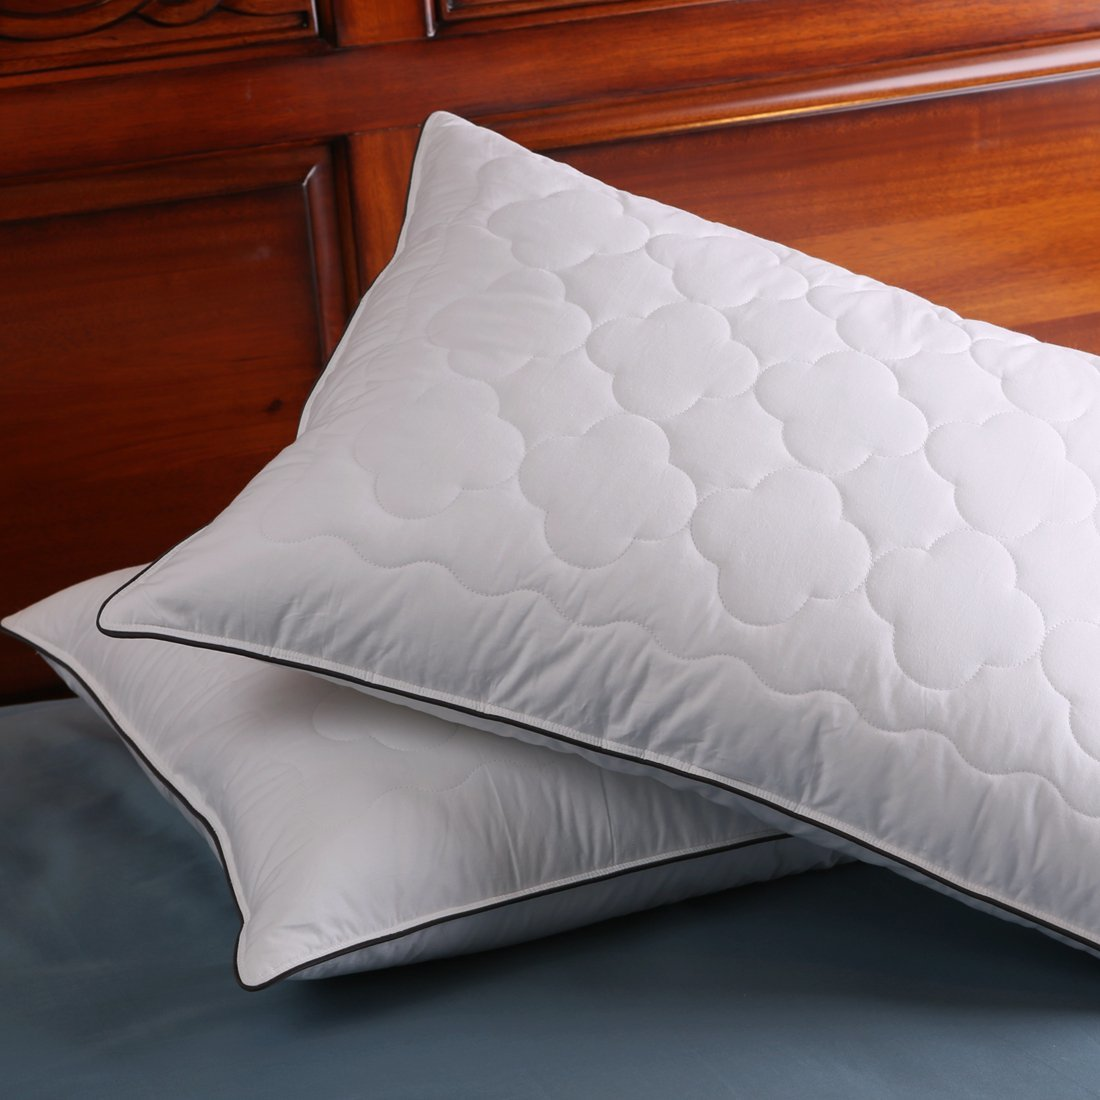 Down and Feather Pillow Double layered Fabric Bed pillow